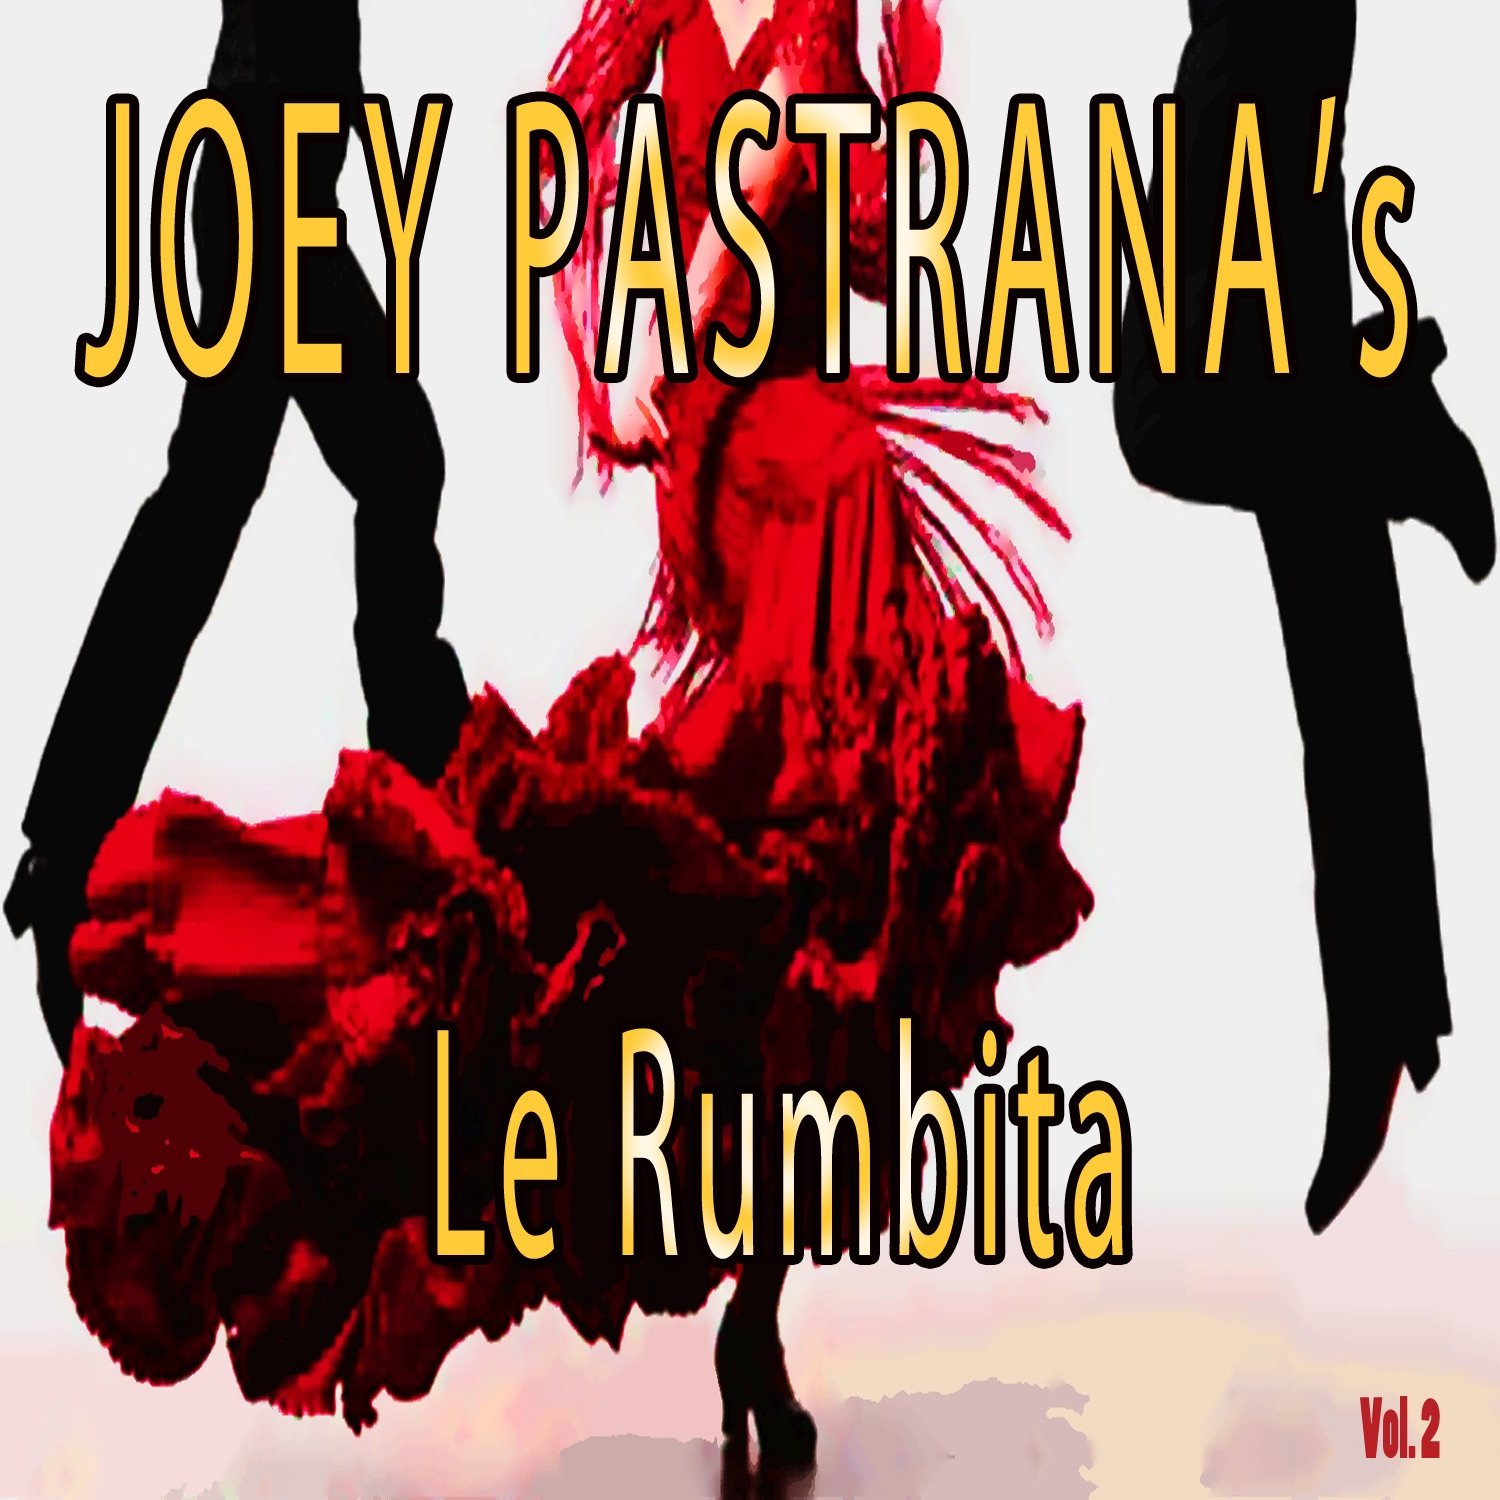 Joey Pastrana's Le Rumbita, Vol. 2